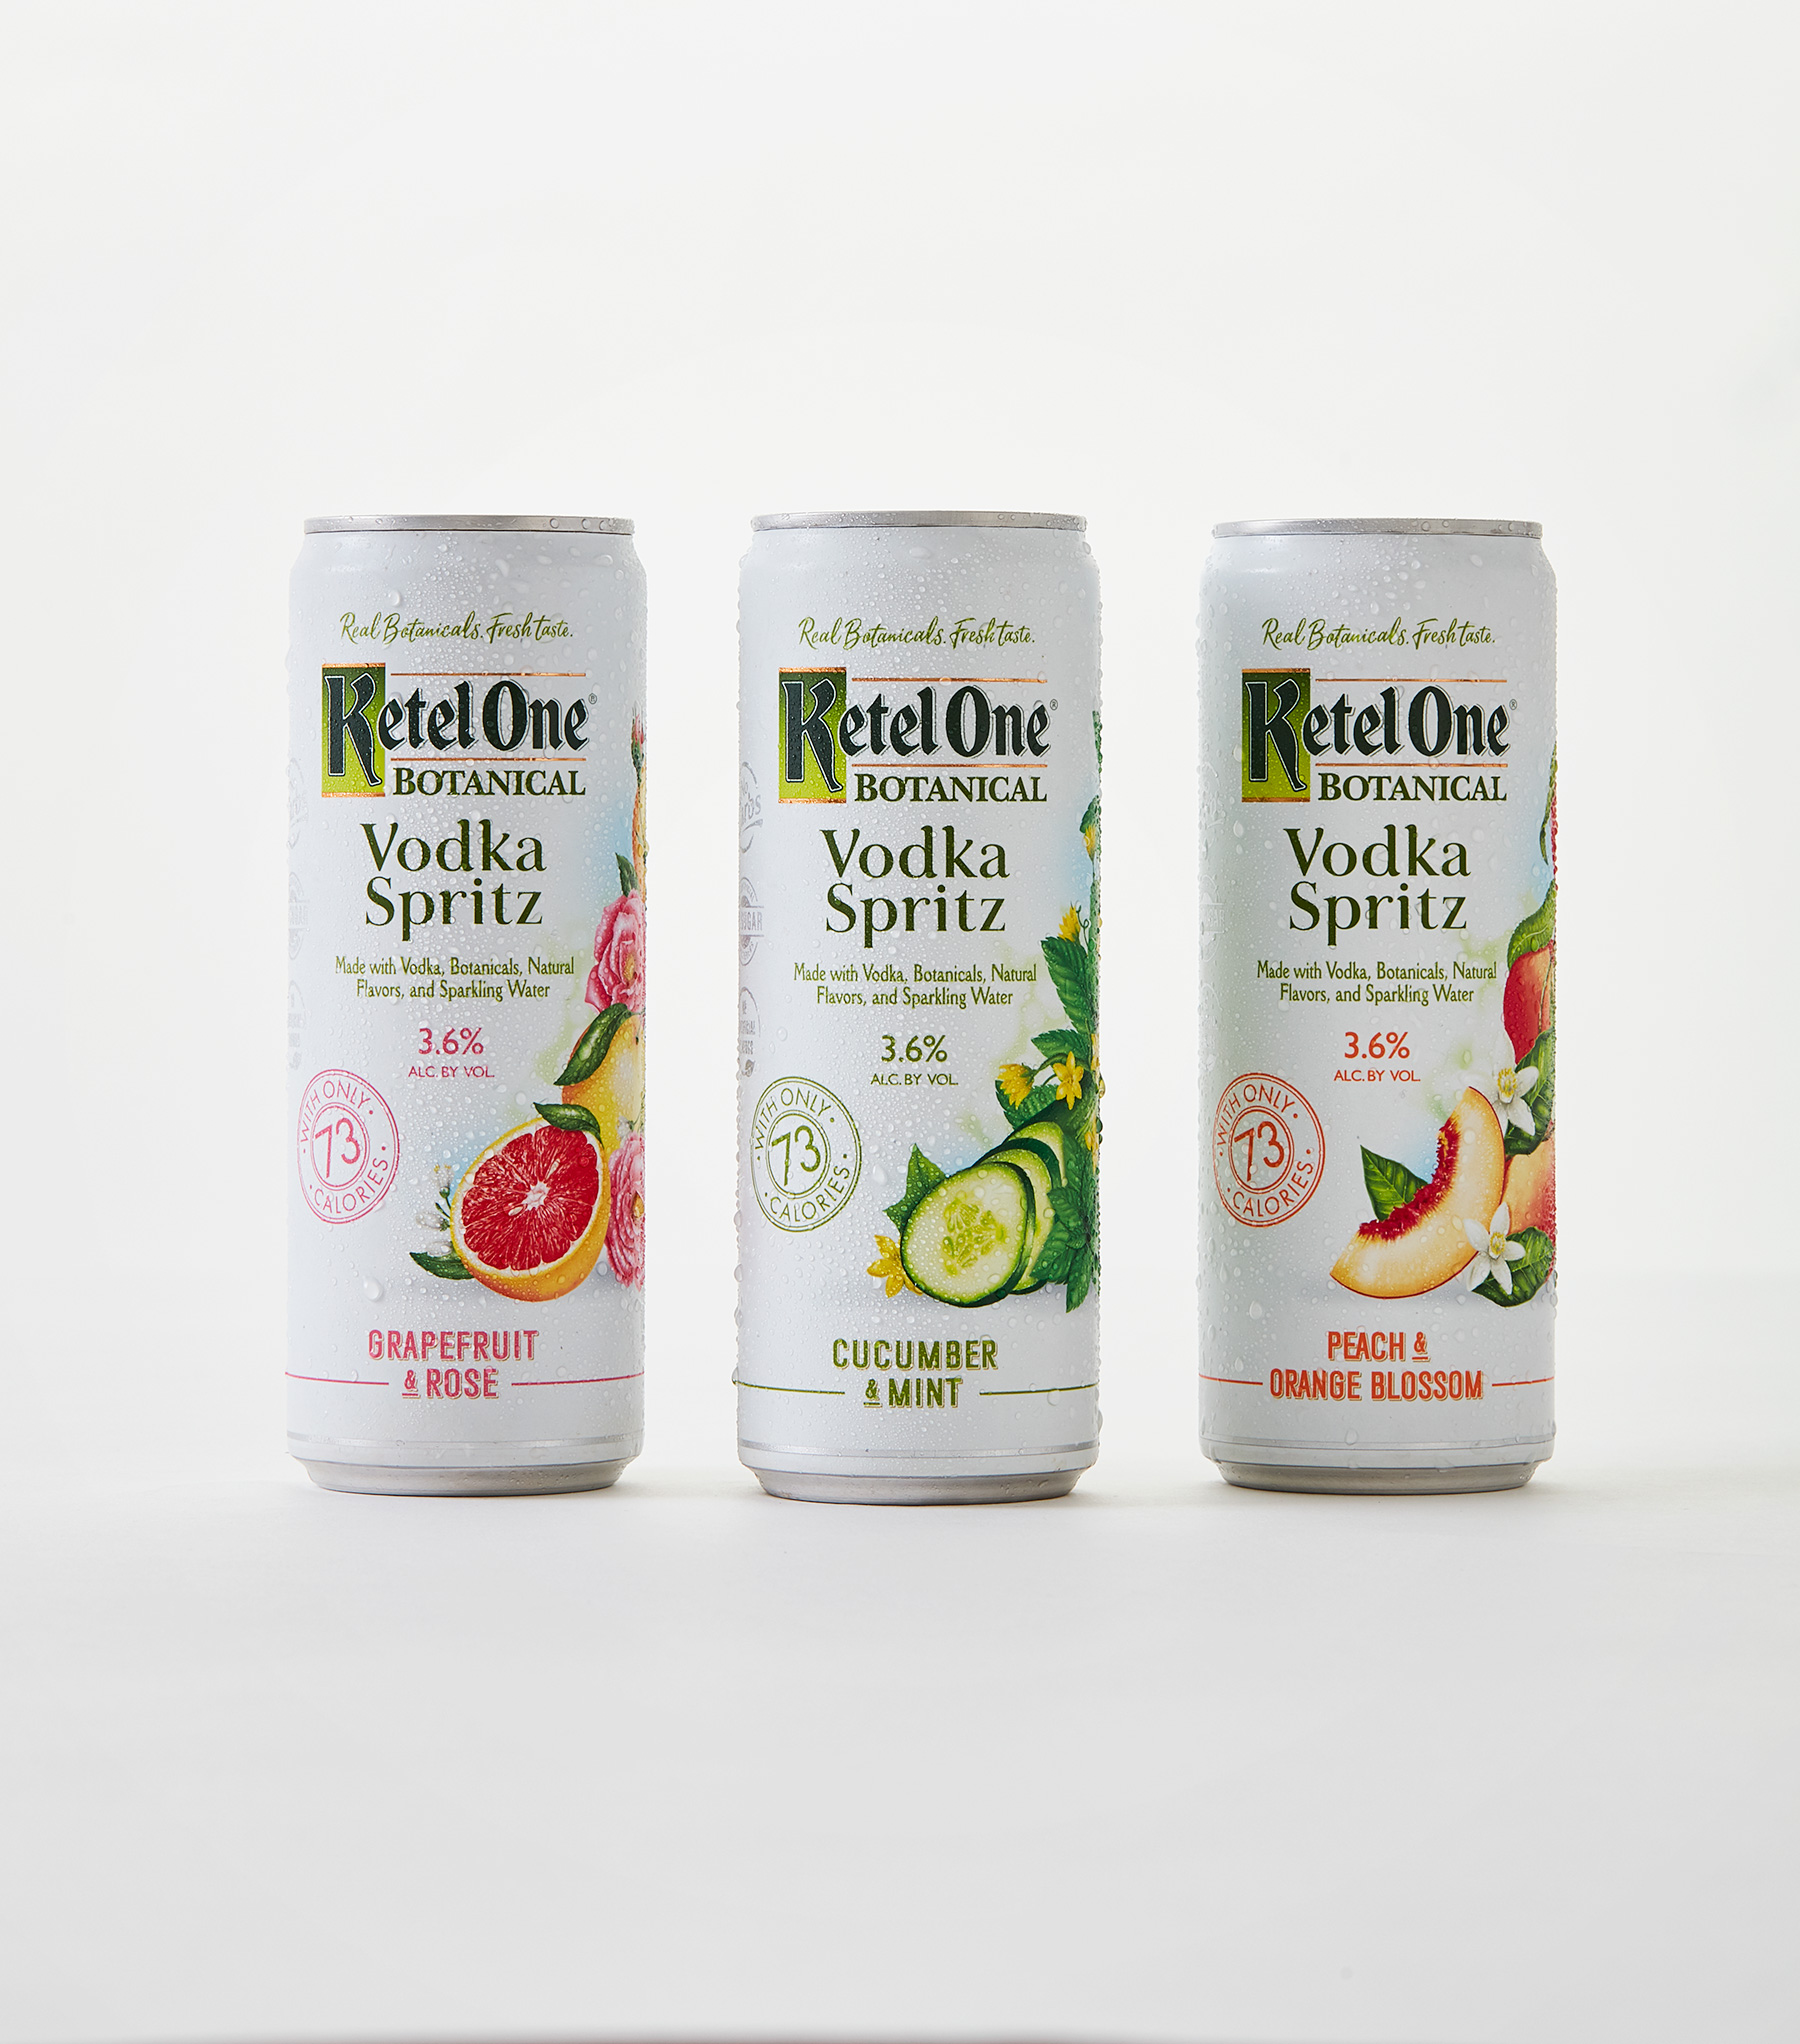 The first-of-its-kind Ketel One Botanical Vodka Spritz has no carbs, no added sugar, no artificial flavors or sweeteners, is made from 100% non-GMO grain and is only 73 calories per serving